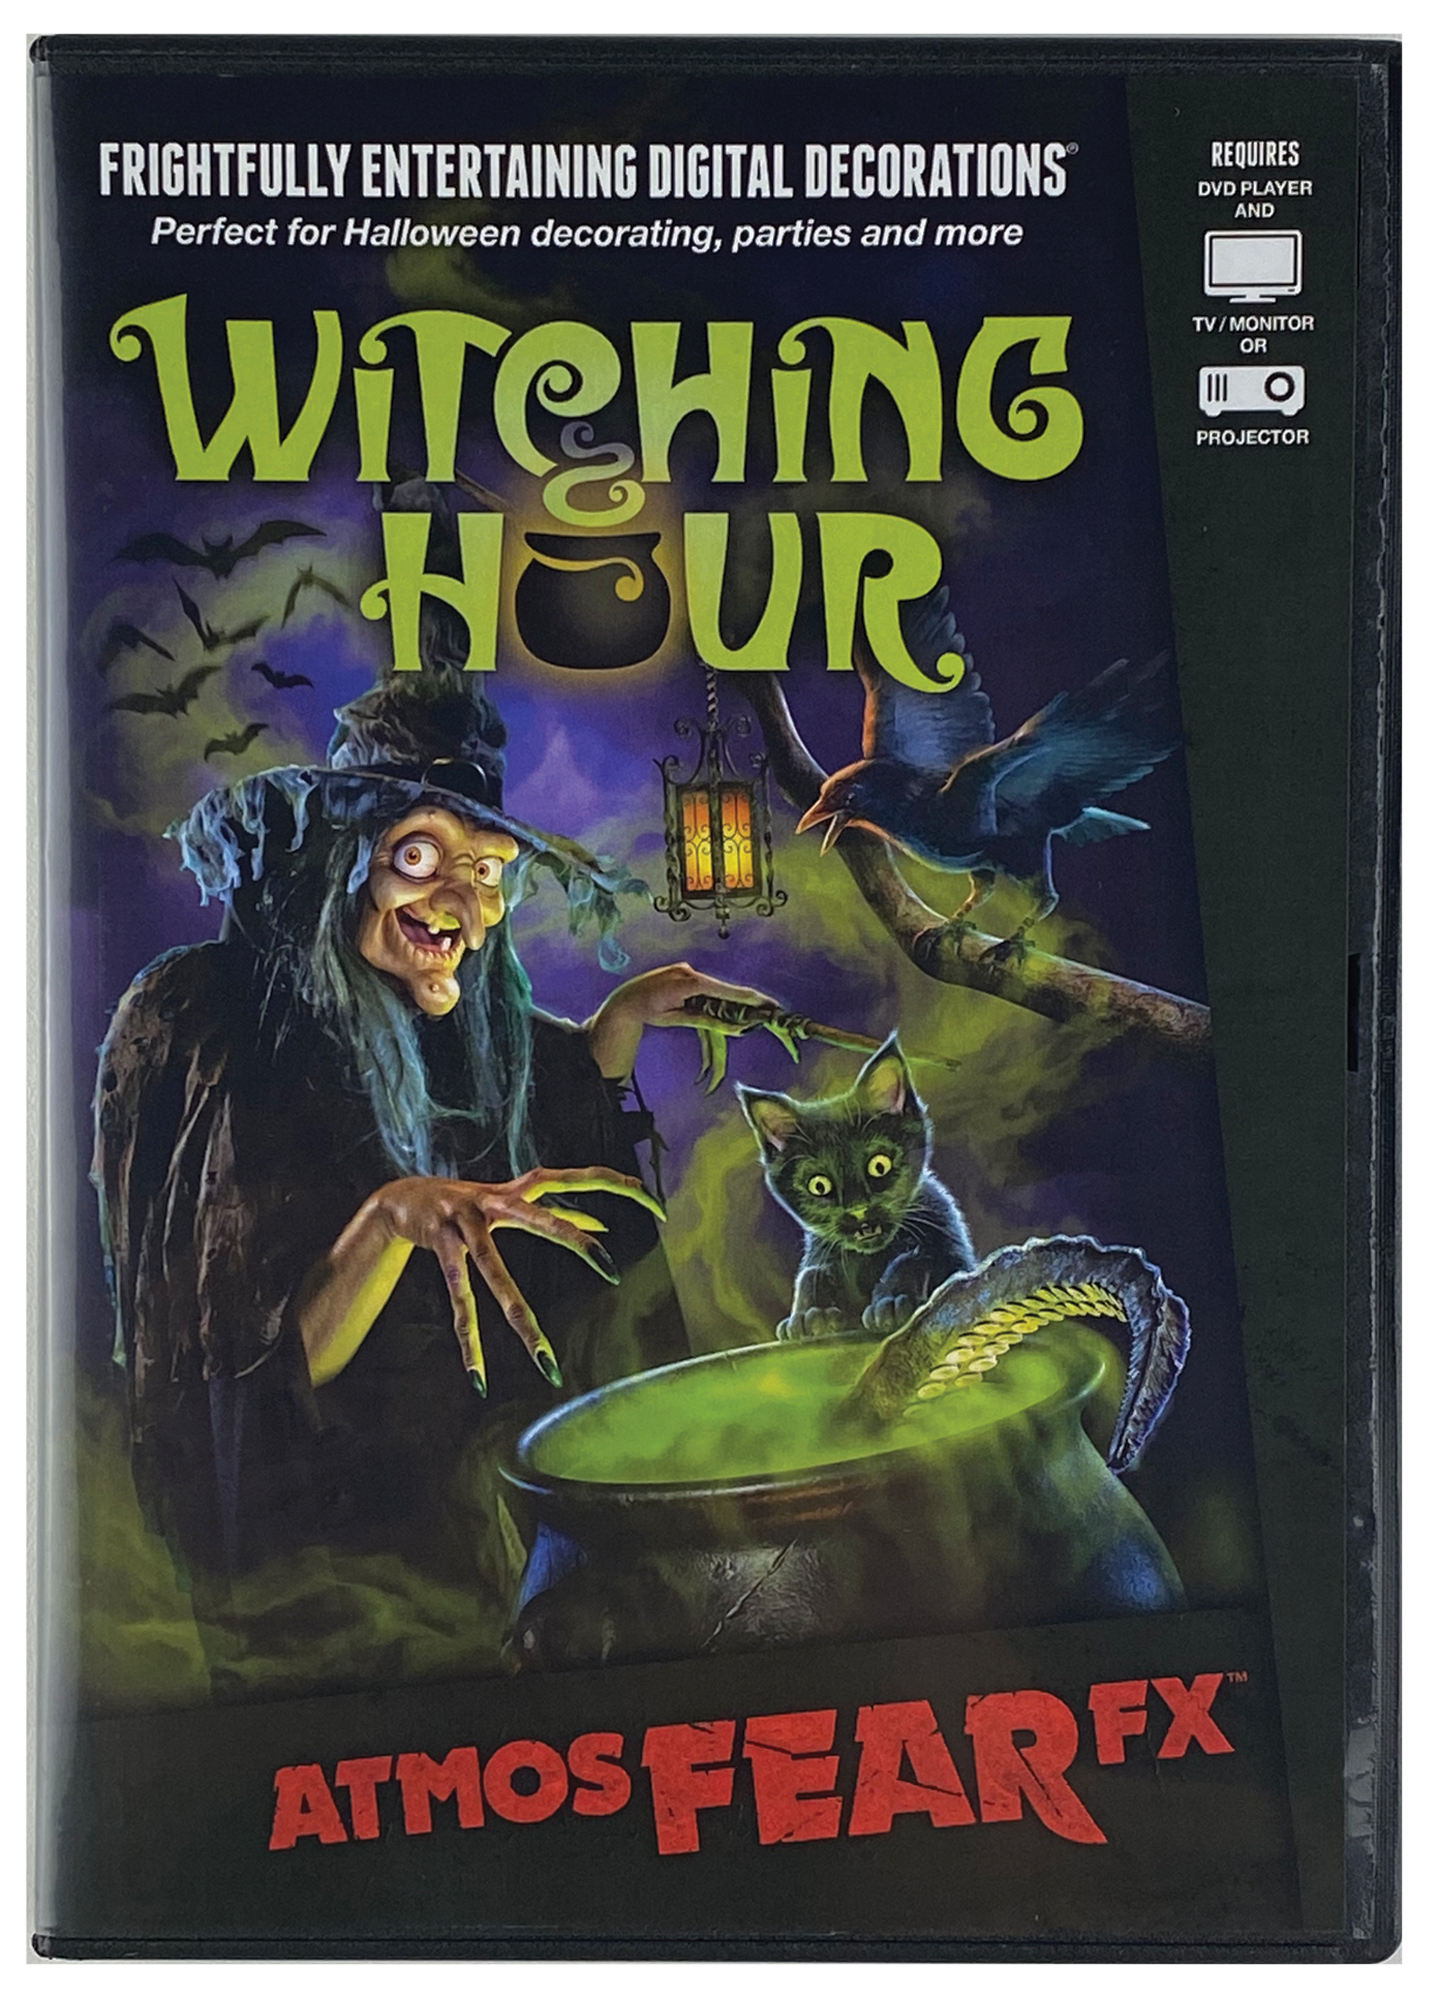 Featured Image for AtmosfearFX Witching Hour DVD